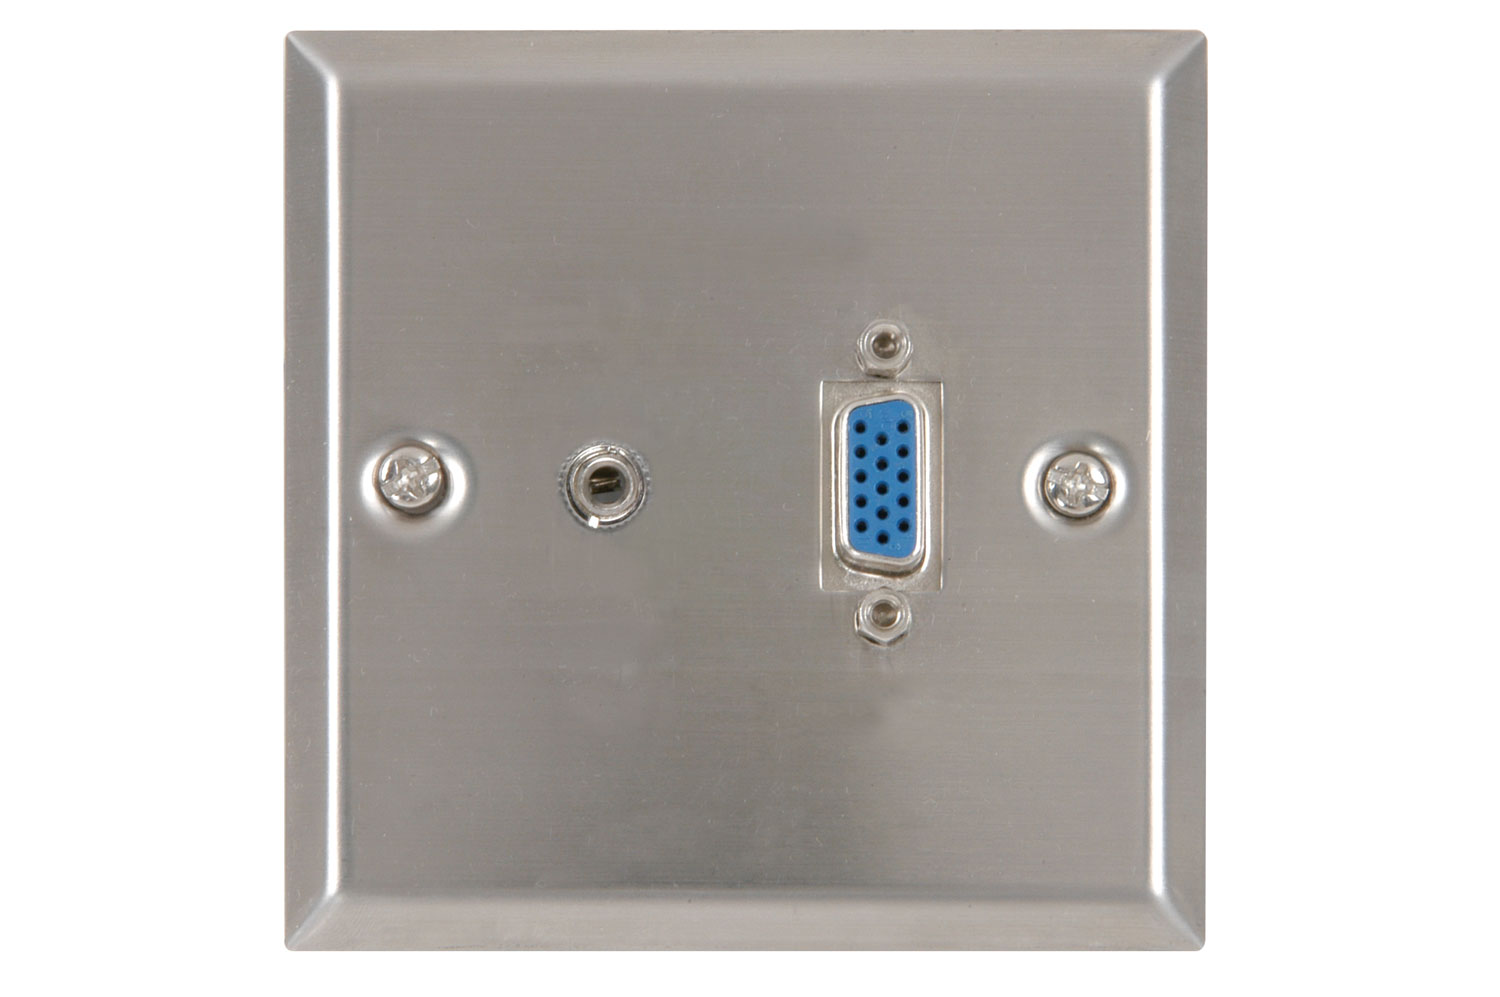 Thru-VGA + audio wallplate WH